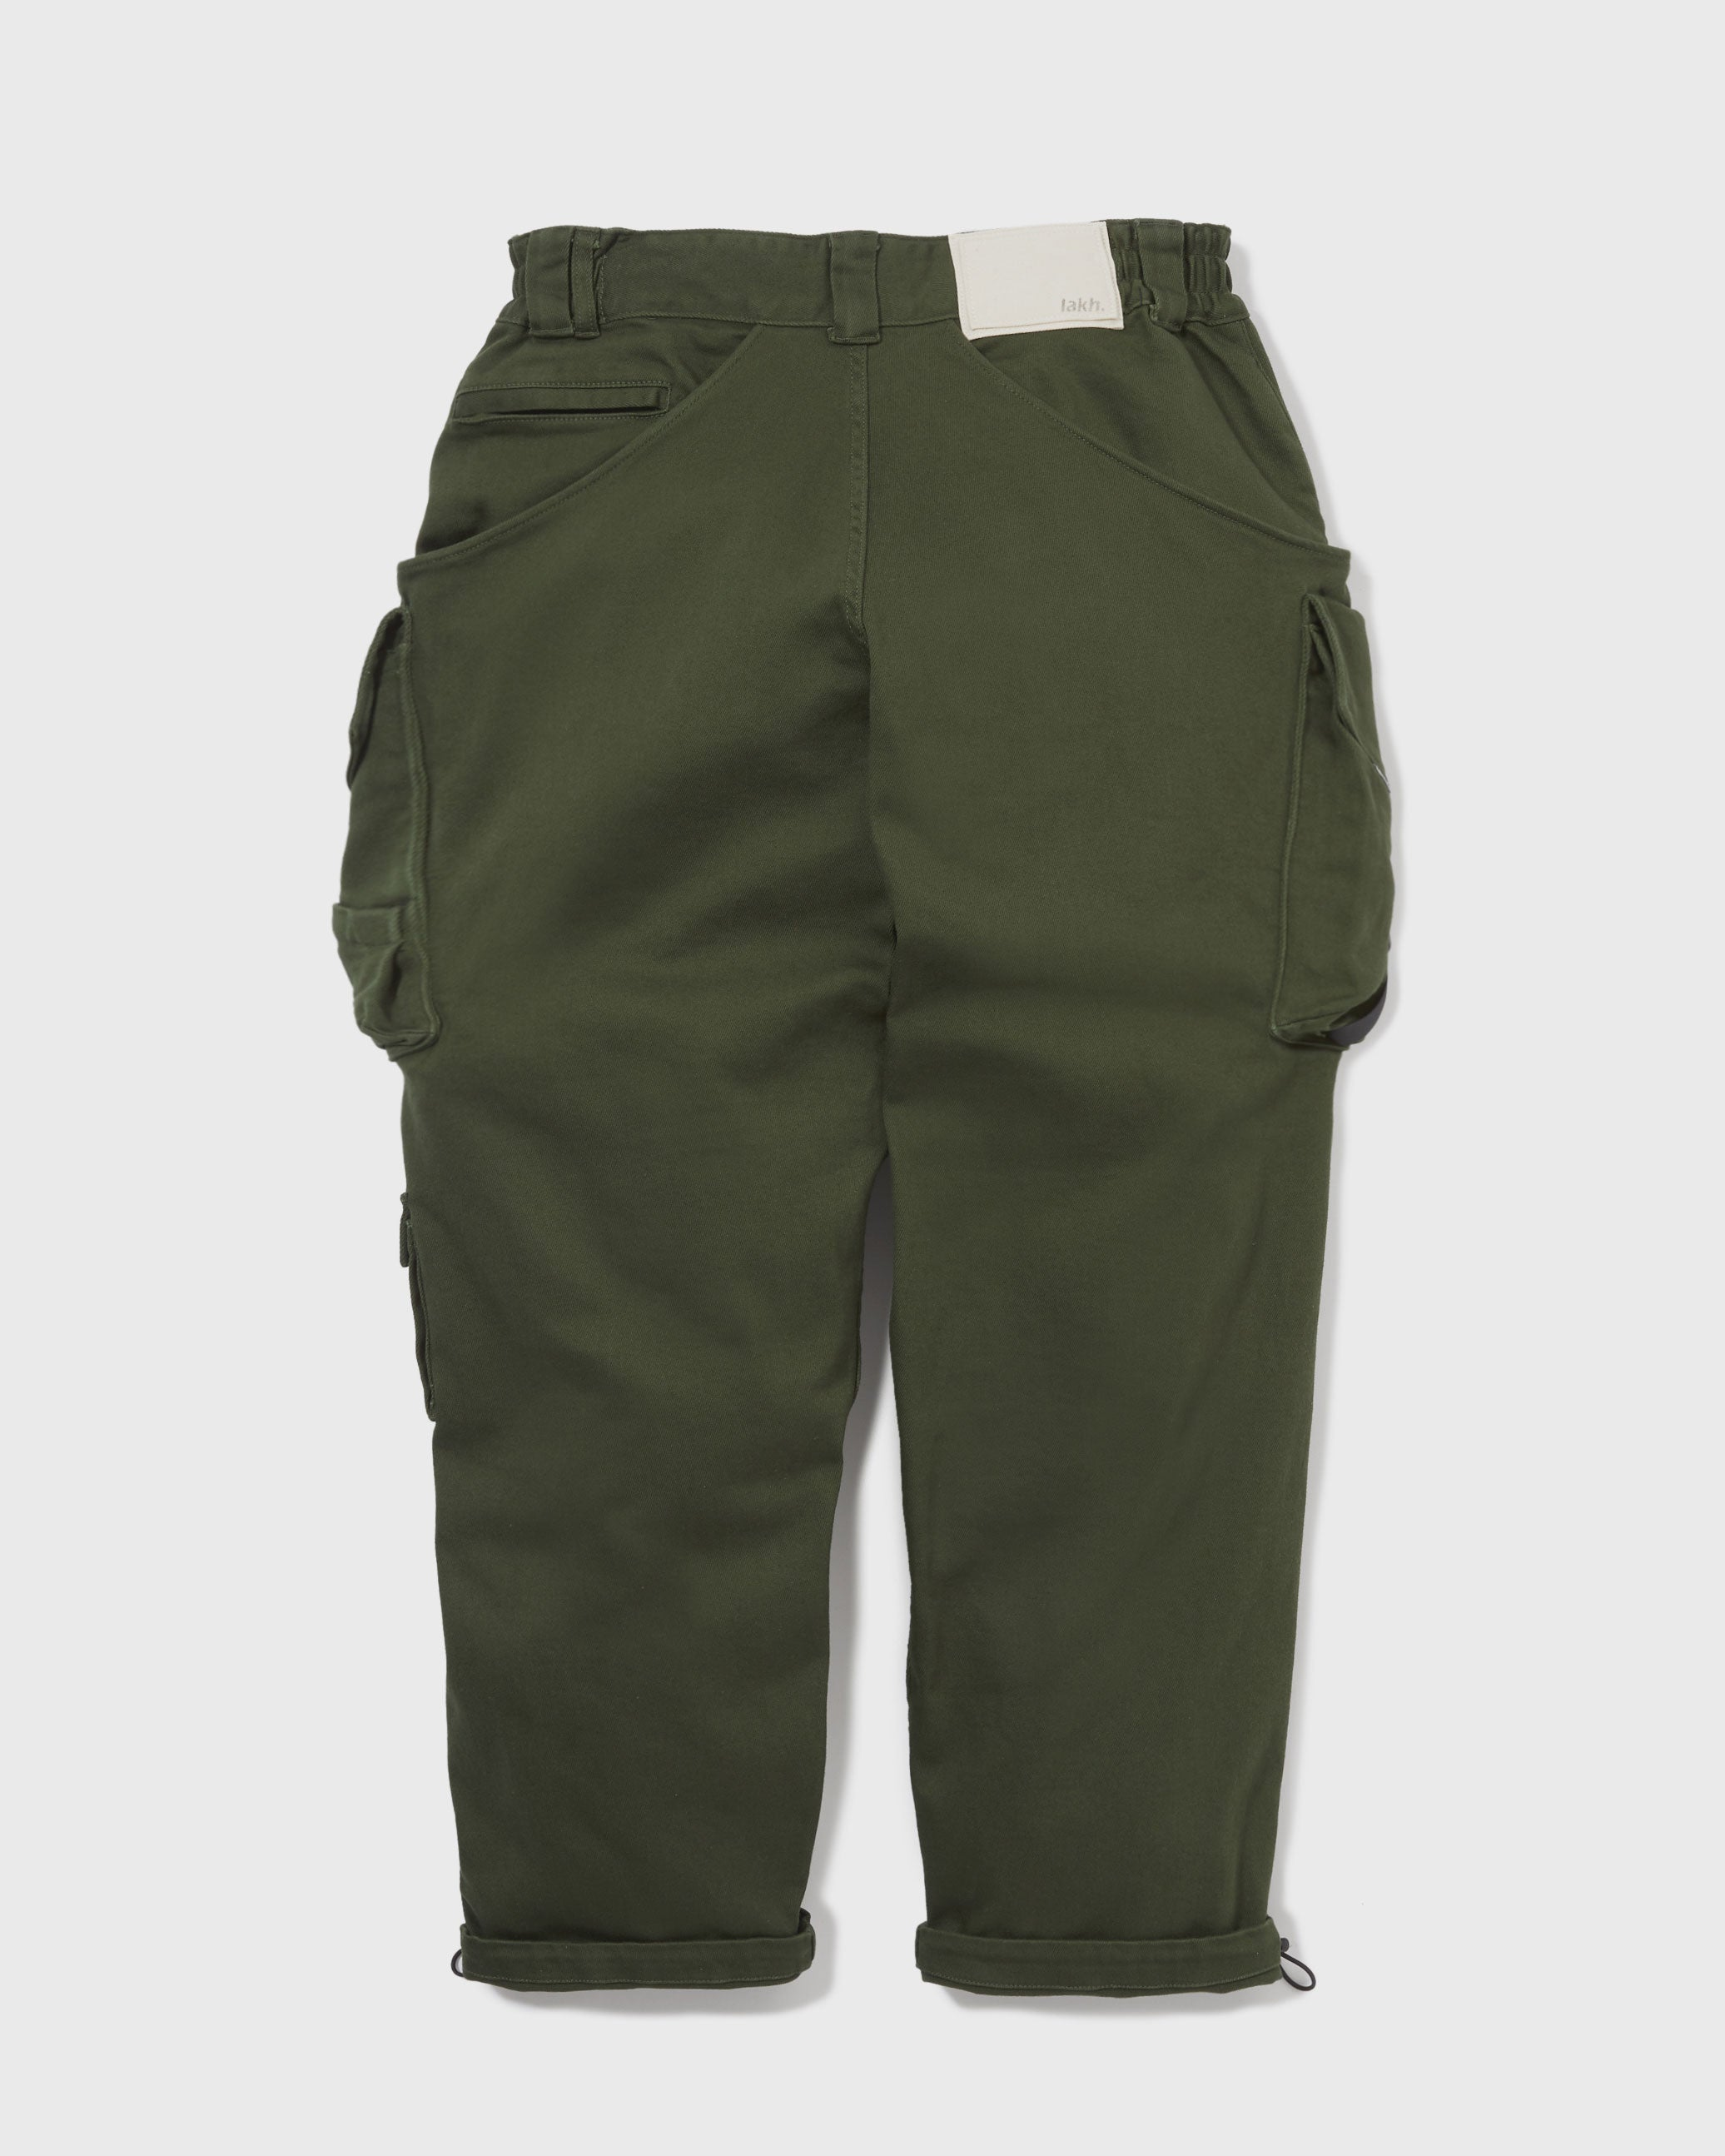 Twelve Pockets Cargo Pants - Olive